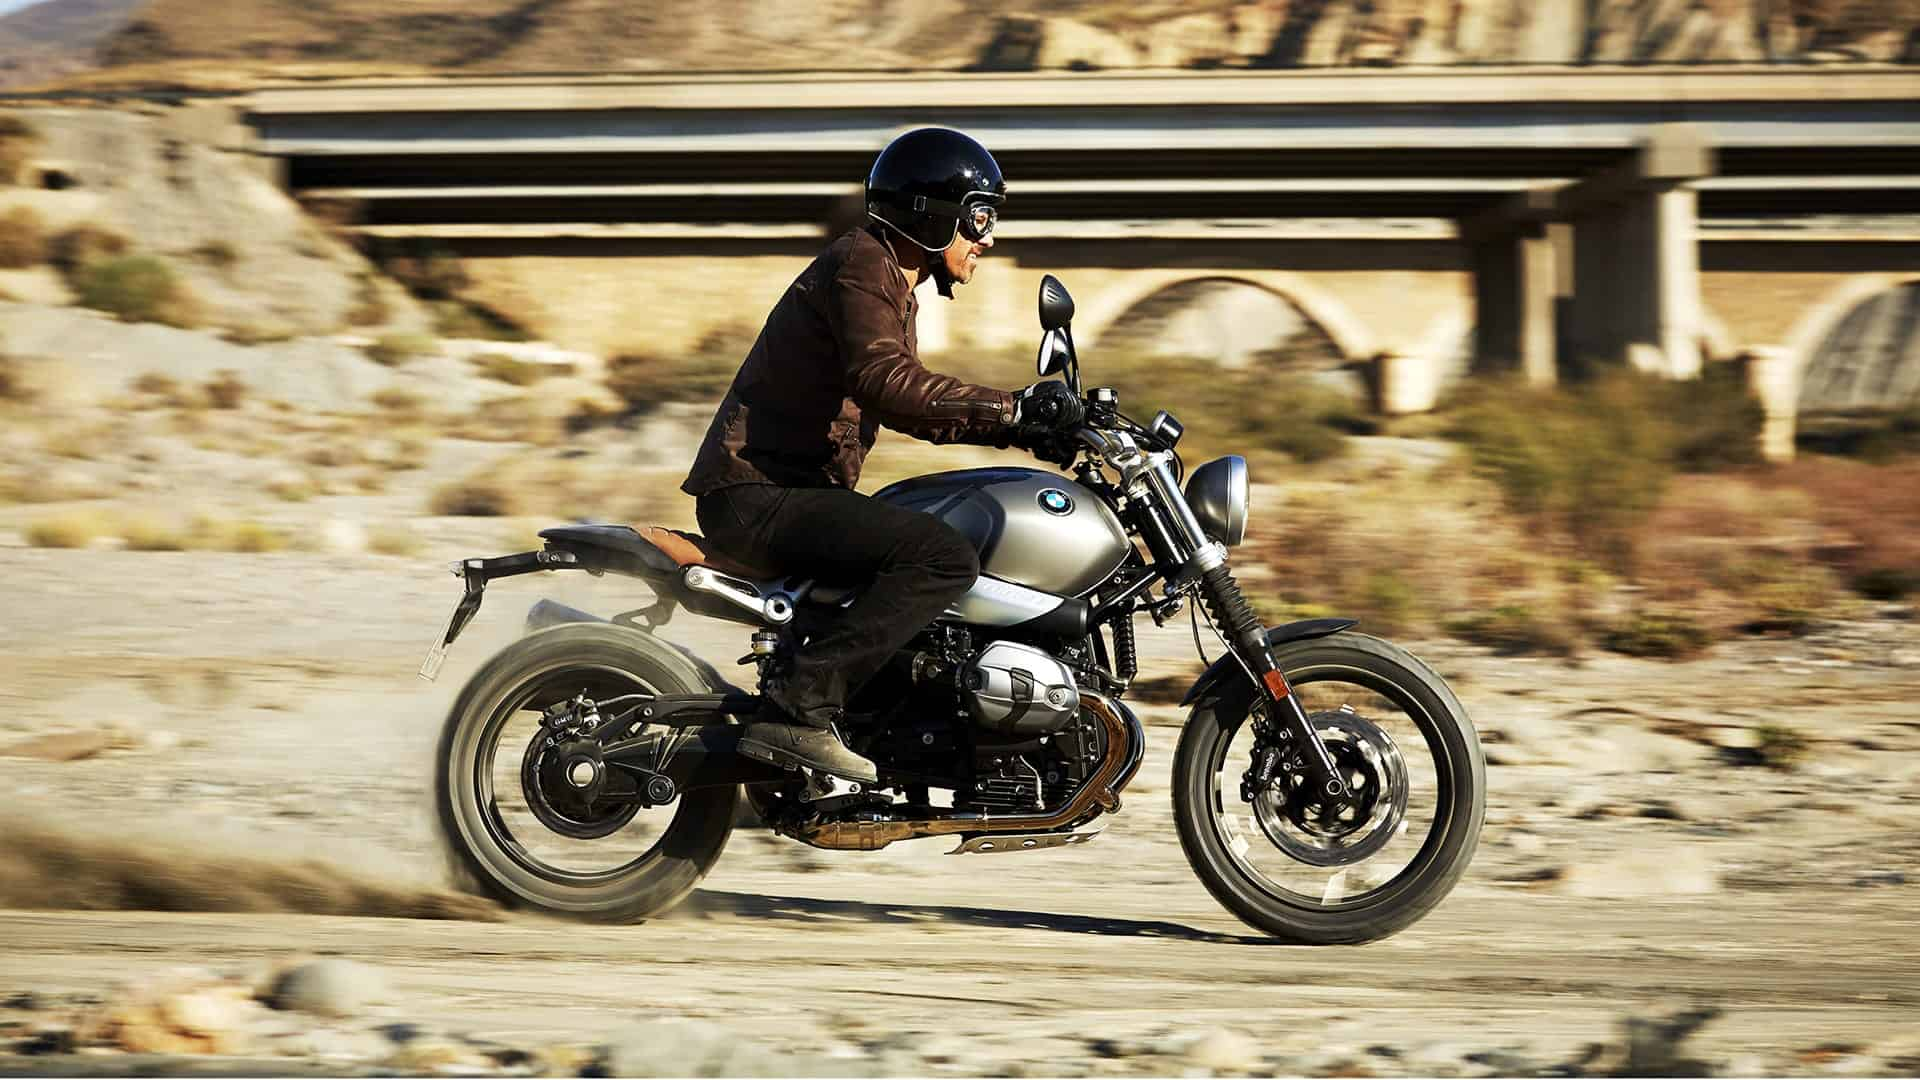 The BMW Scrambler can actually go off road